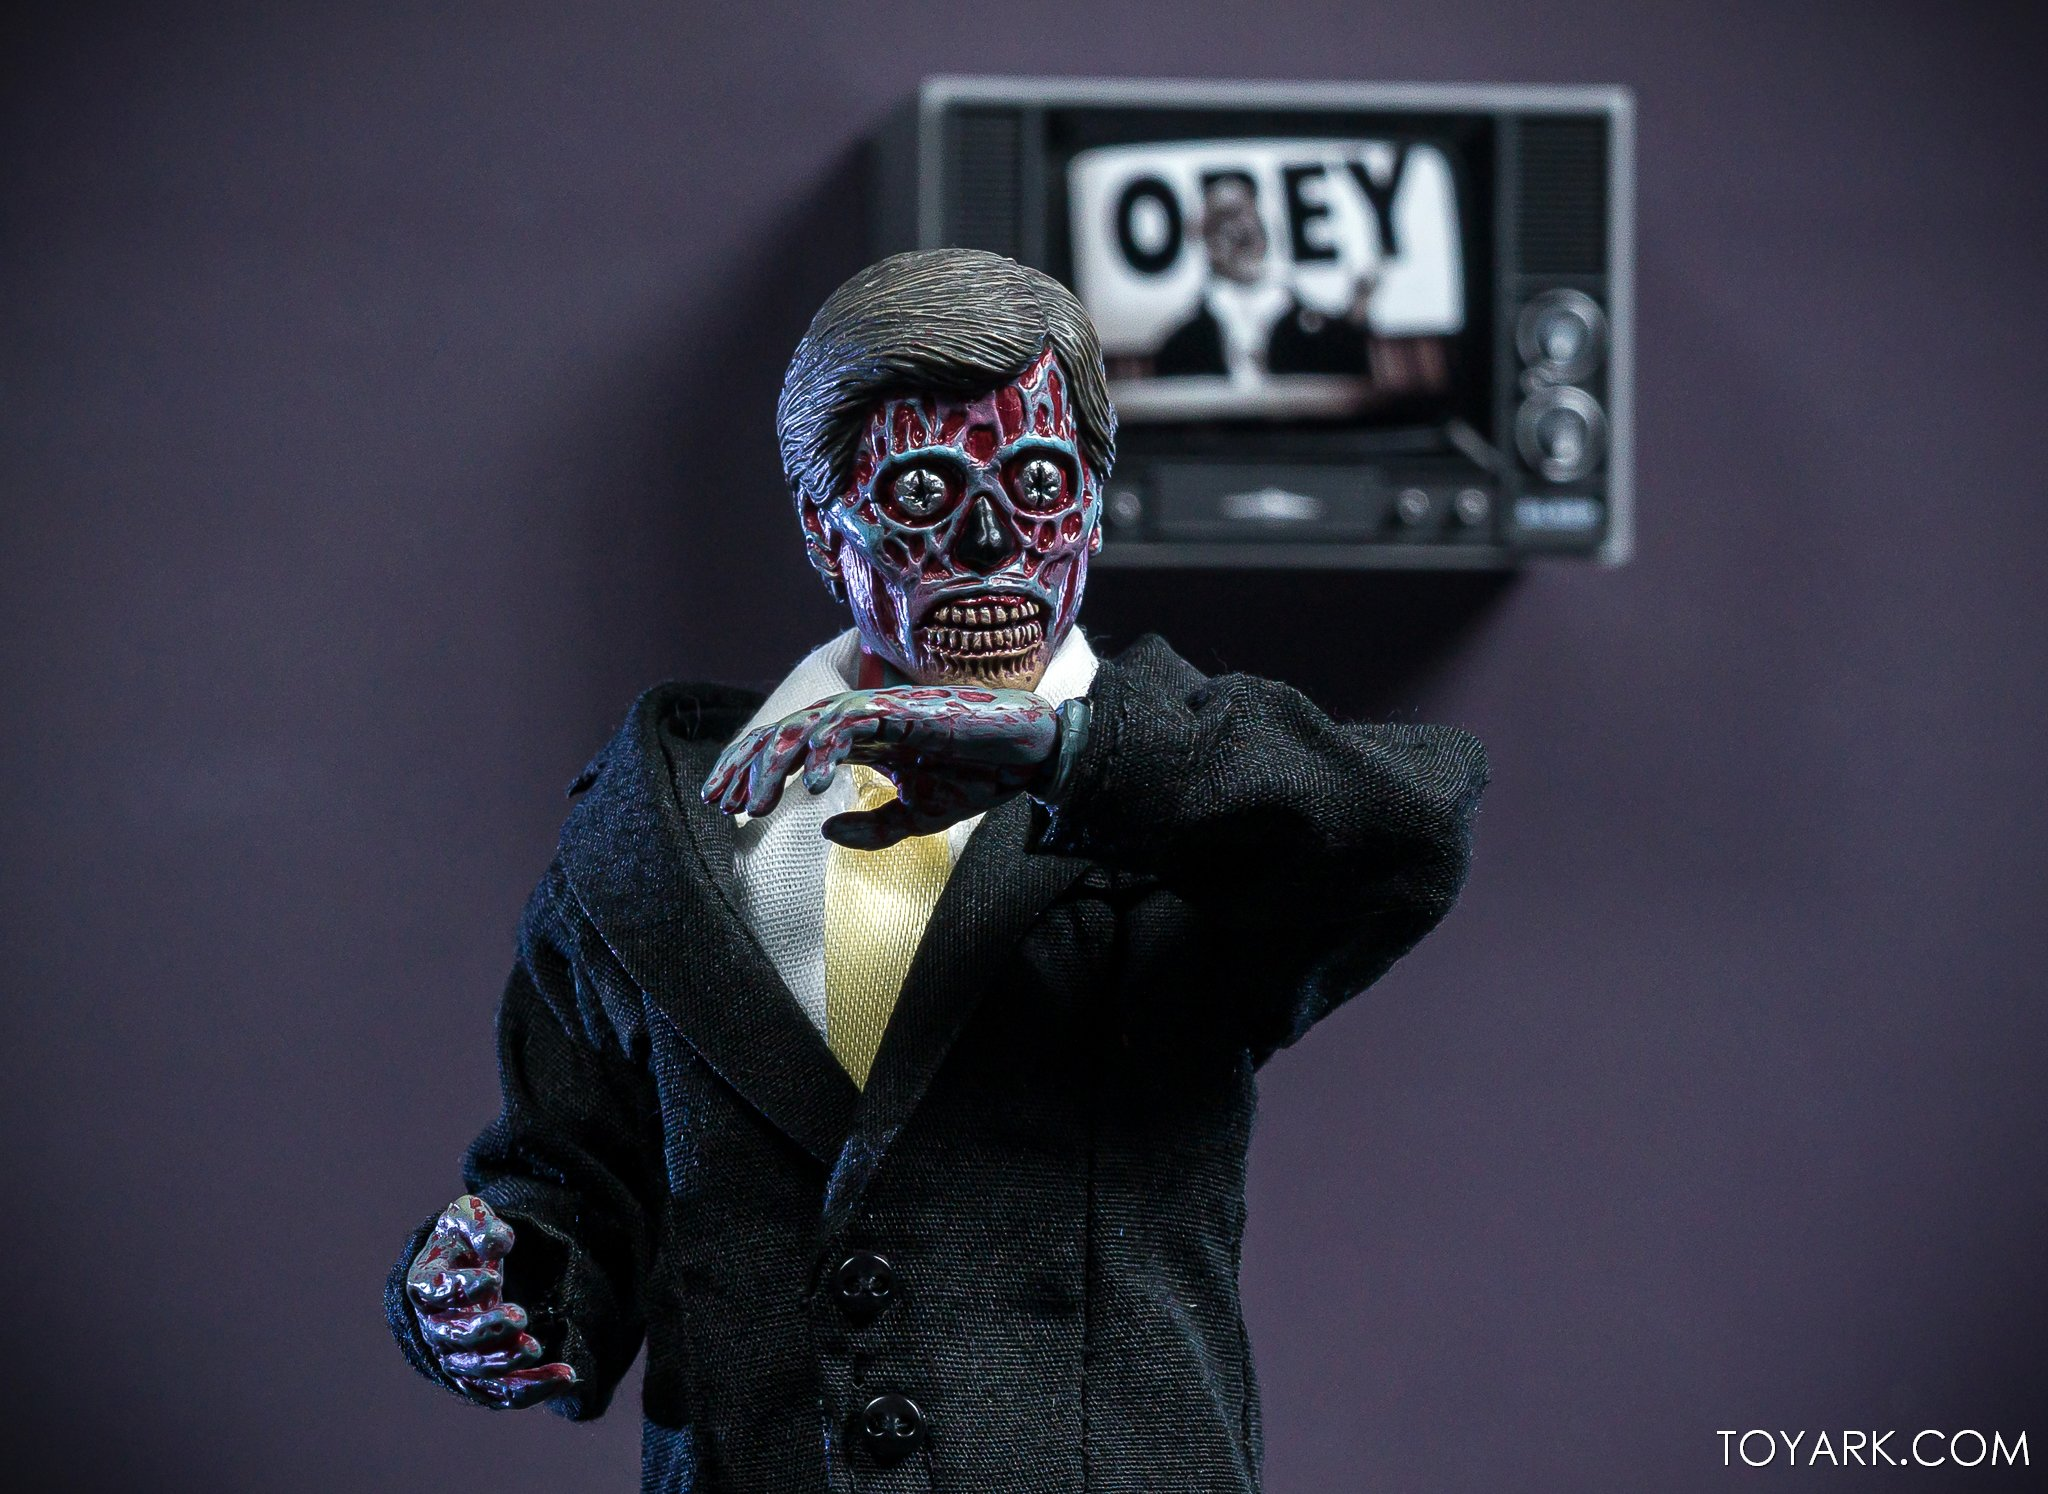 https://news.toyark.com/wp-content/uploads/sites/4/2019/11/NECA-They-Live-Ghouls-022.jpg